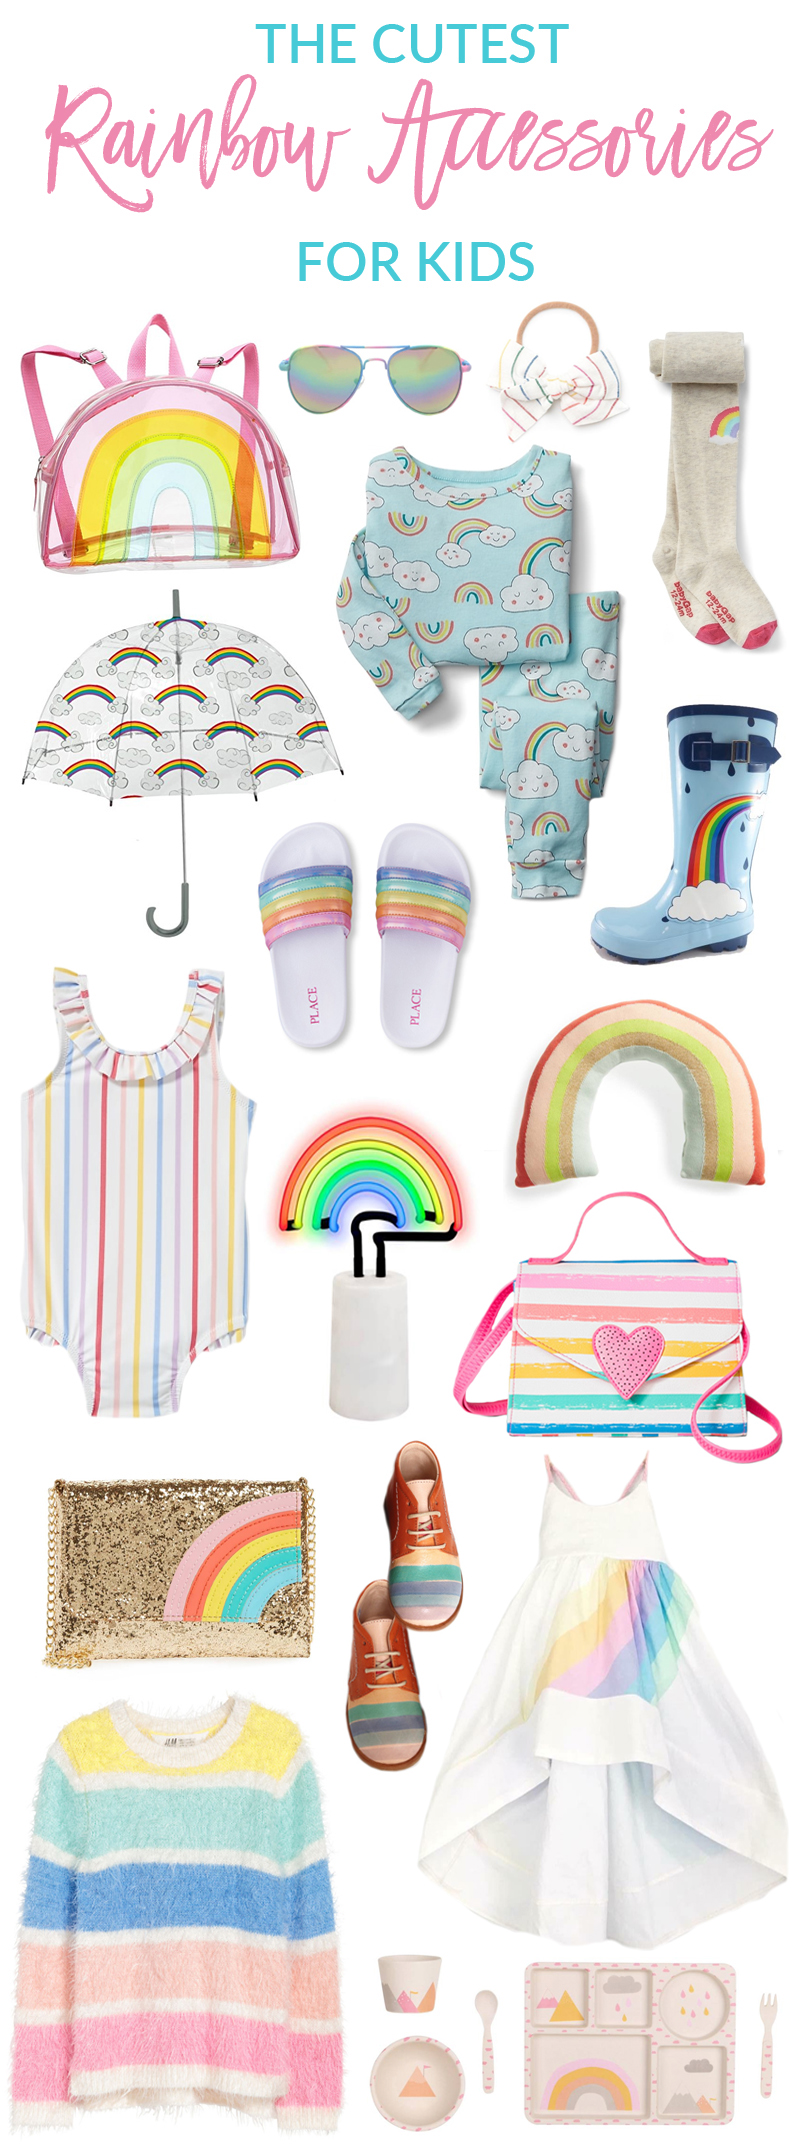 The Cutest Rainbow Clothing and Accessories For Kids by popular Utah style blogger Sandy A La Mode